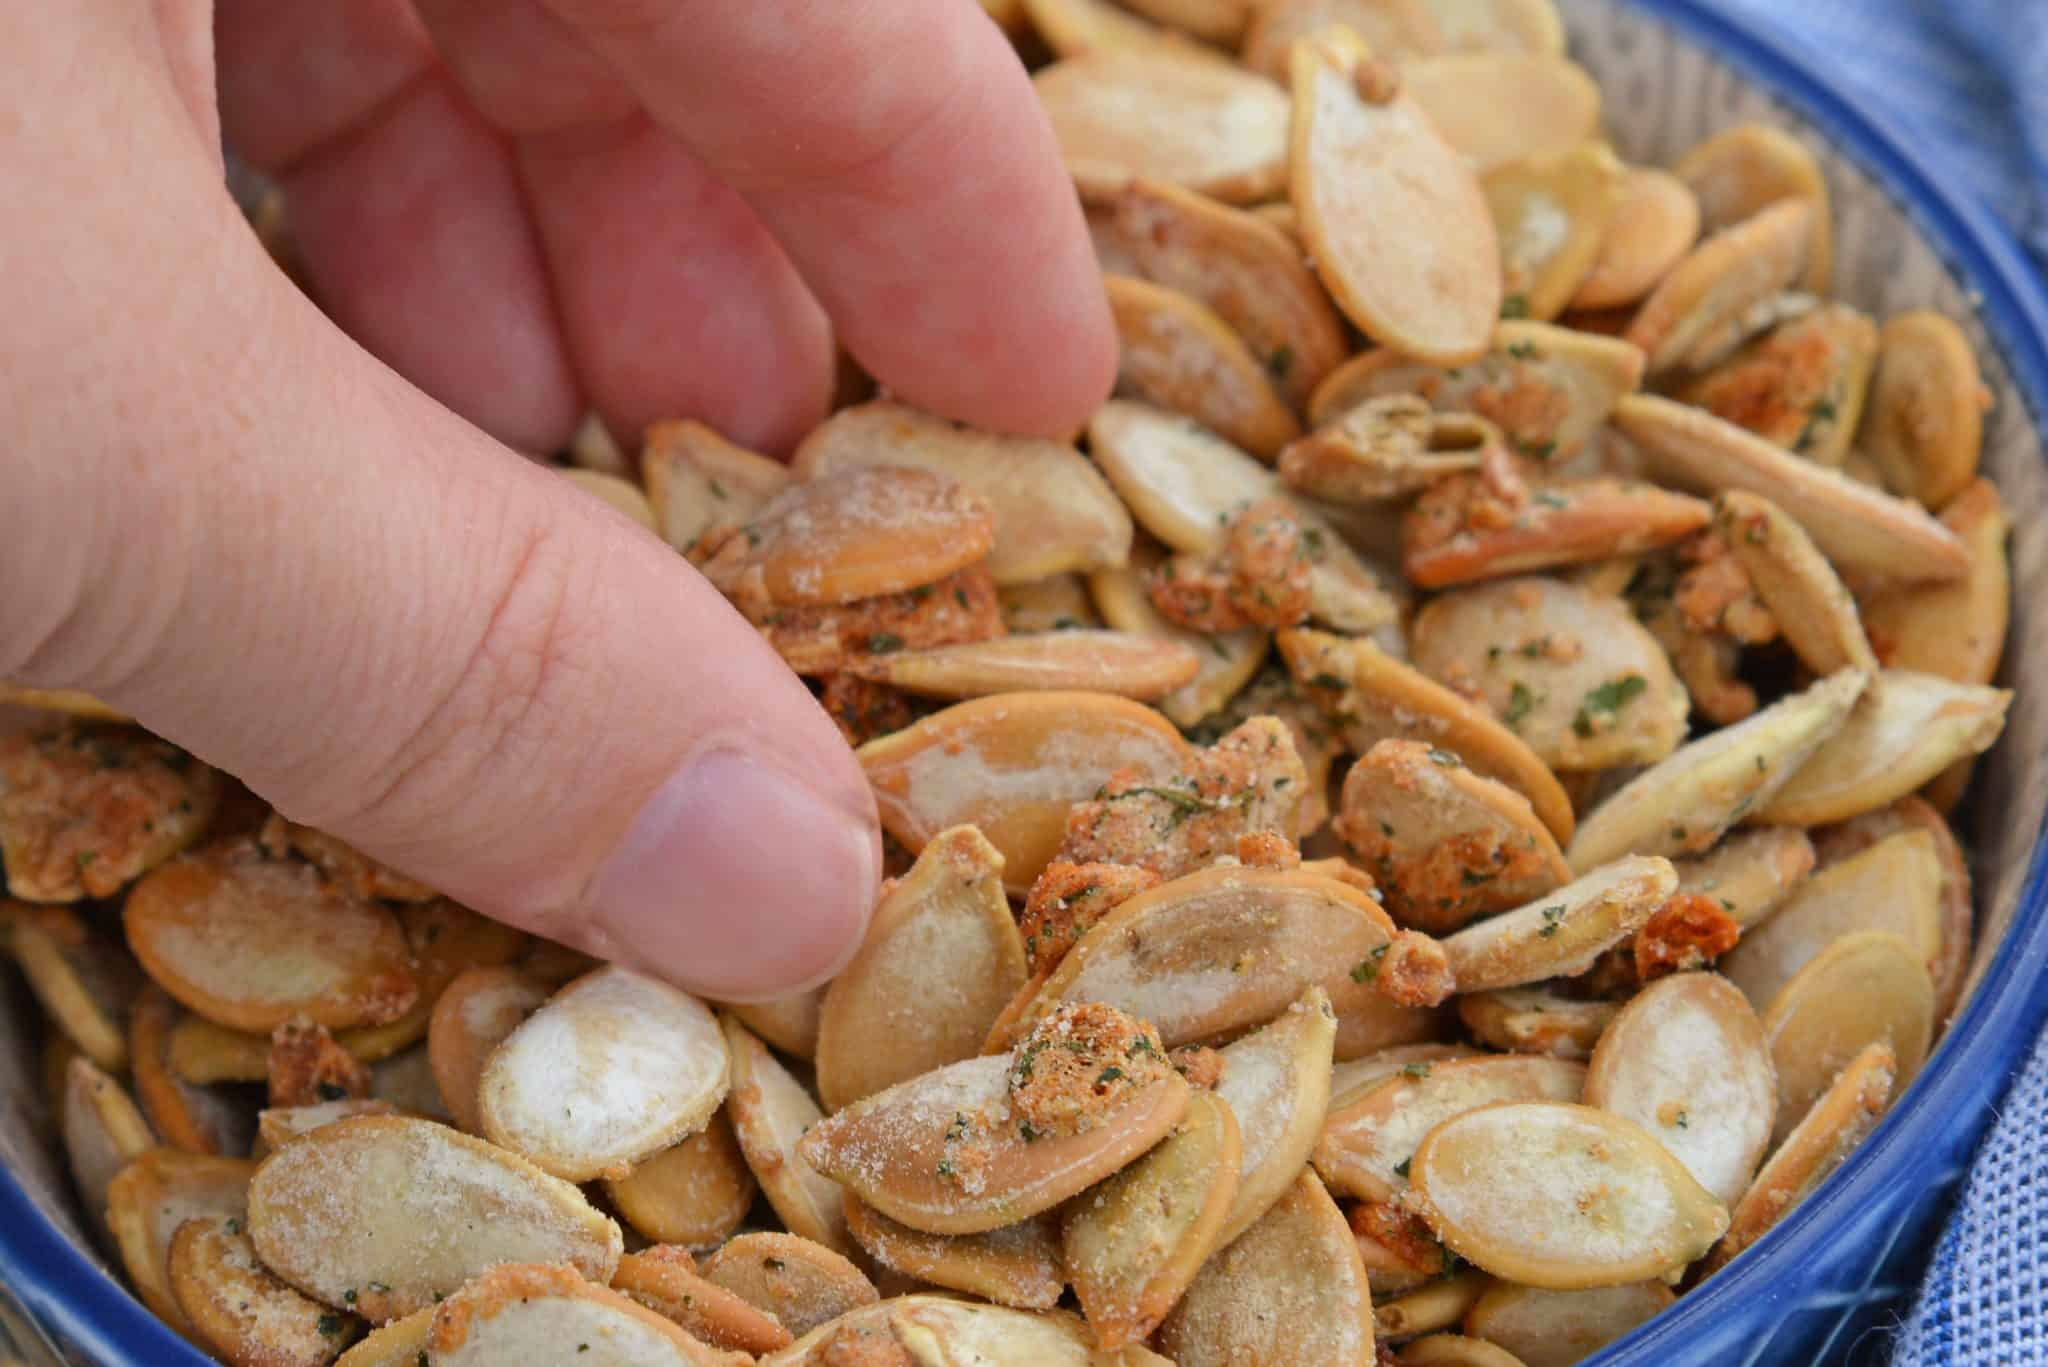 Ranch Pumpkin Seeds take roasted pumpkin seeds to a whole new level. With only 3 ingredients, they're an easy and delicious fall snack! #roastedpumpkinseeds #ranchpumpkinseeds www.savoryexperiments.com